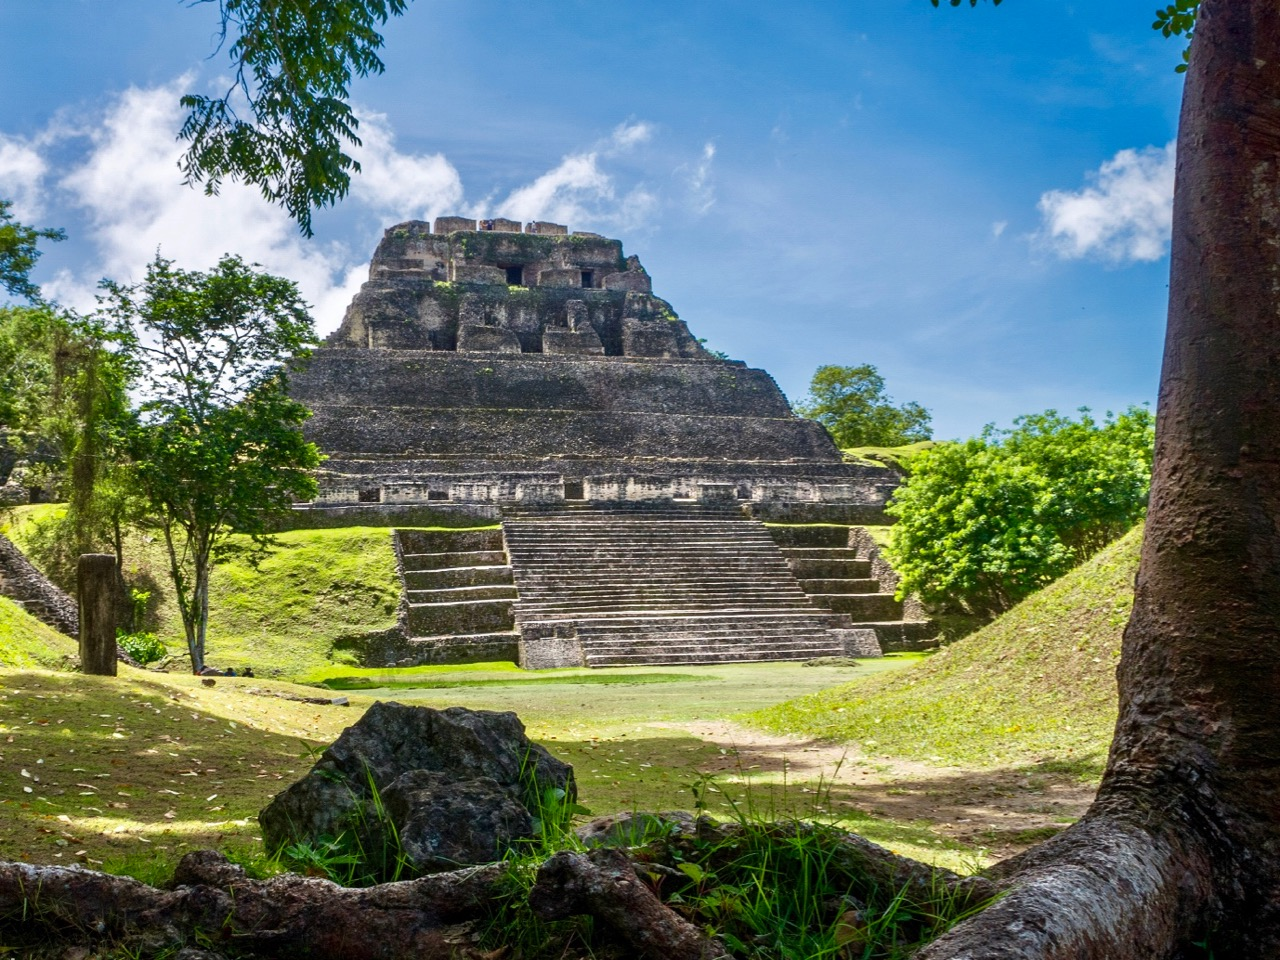 The Conversation: Discoveries shed light on Maya civilization